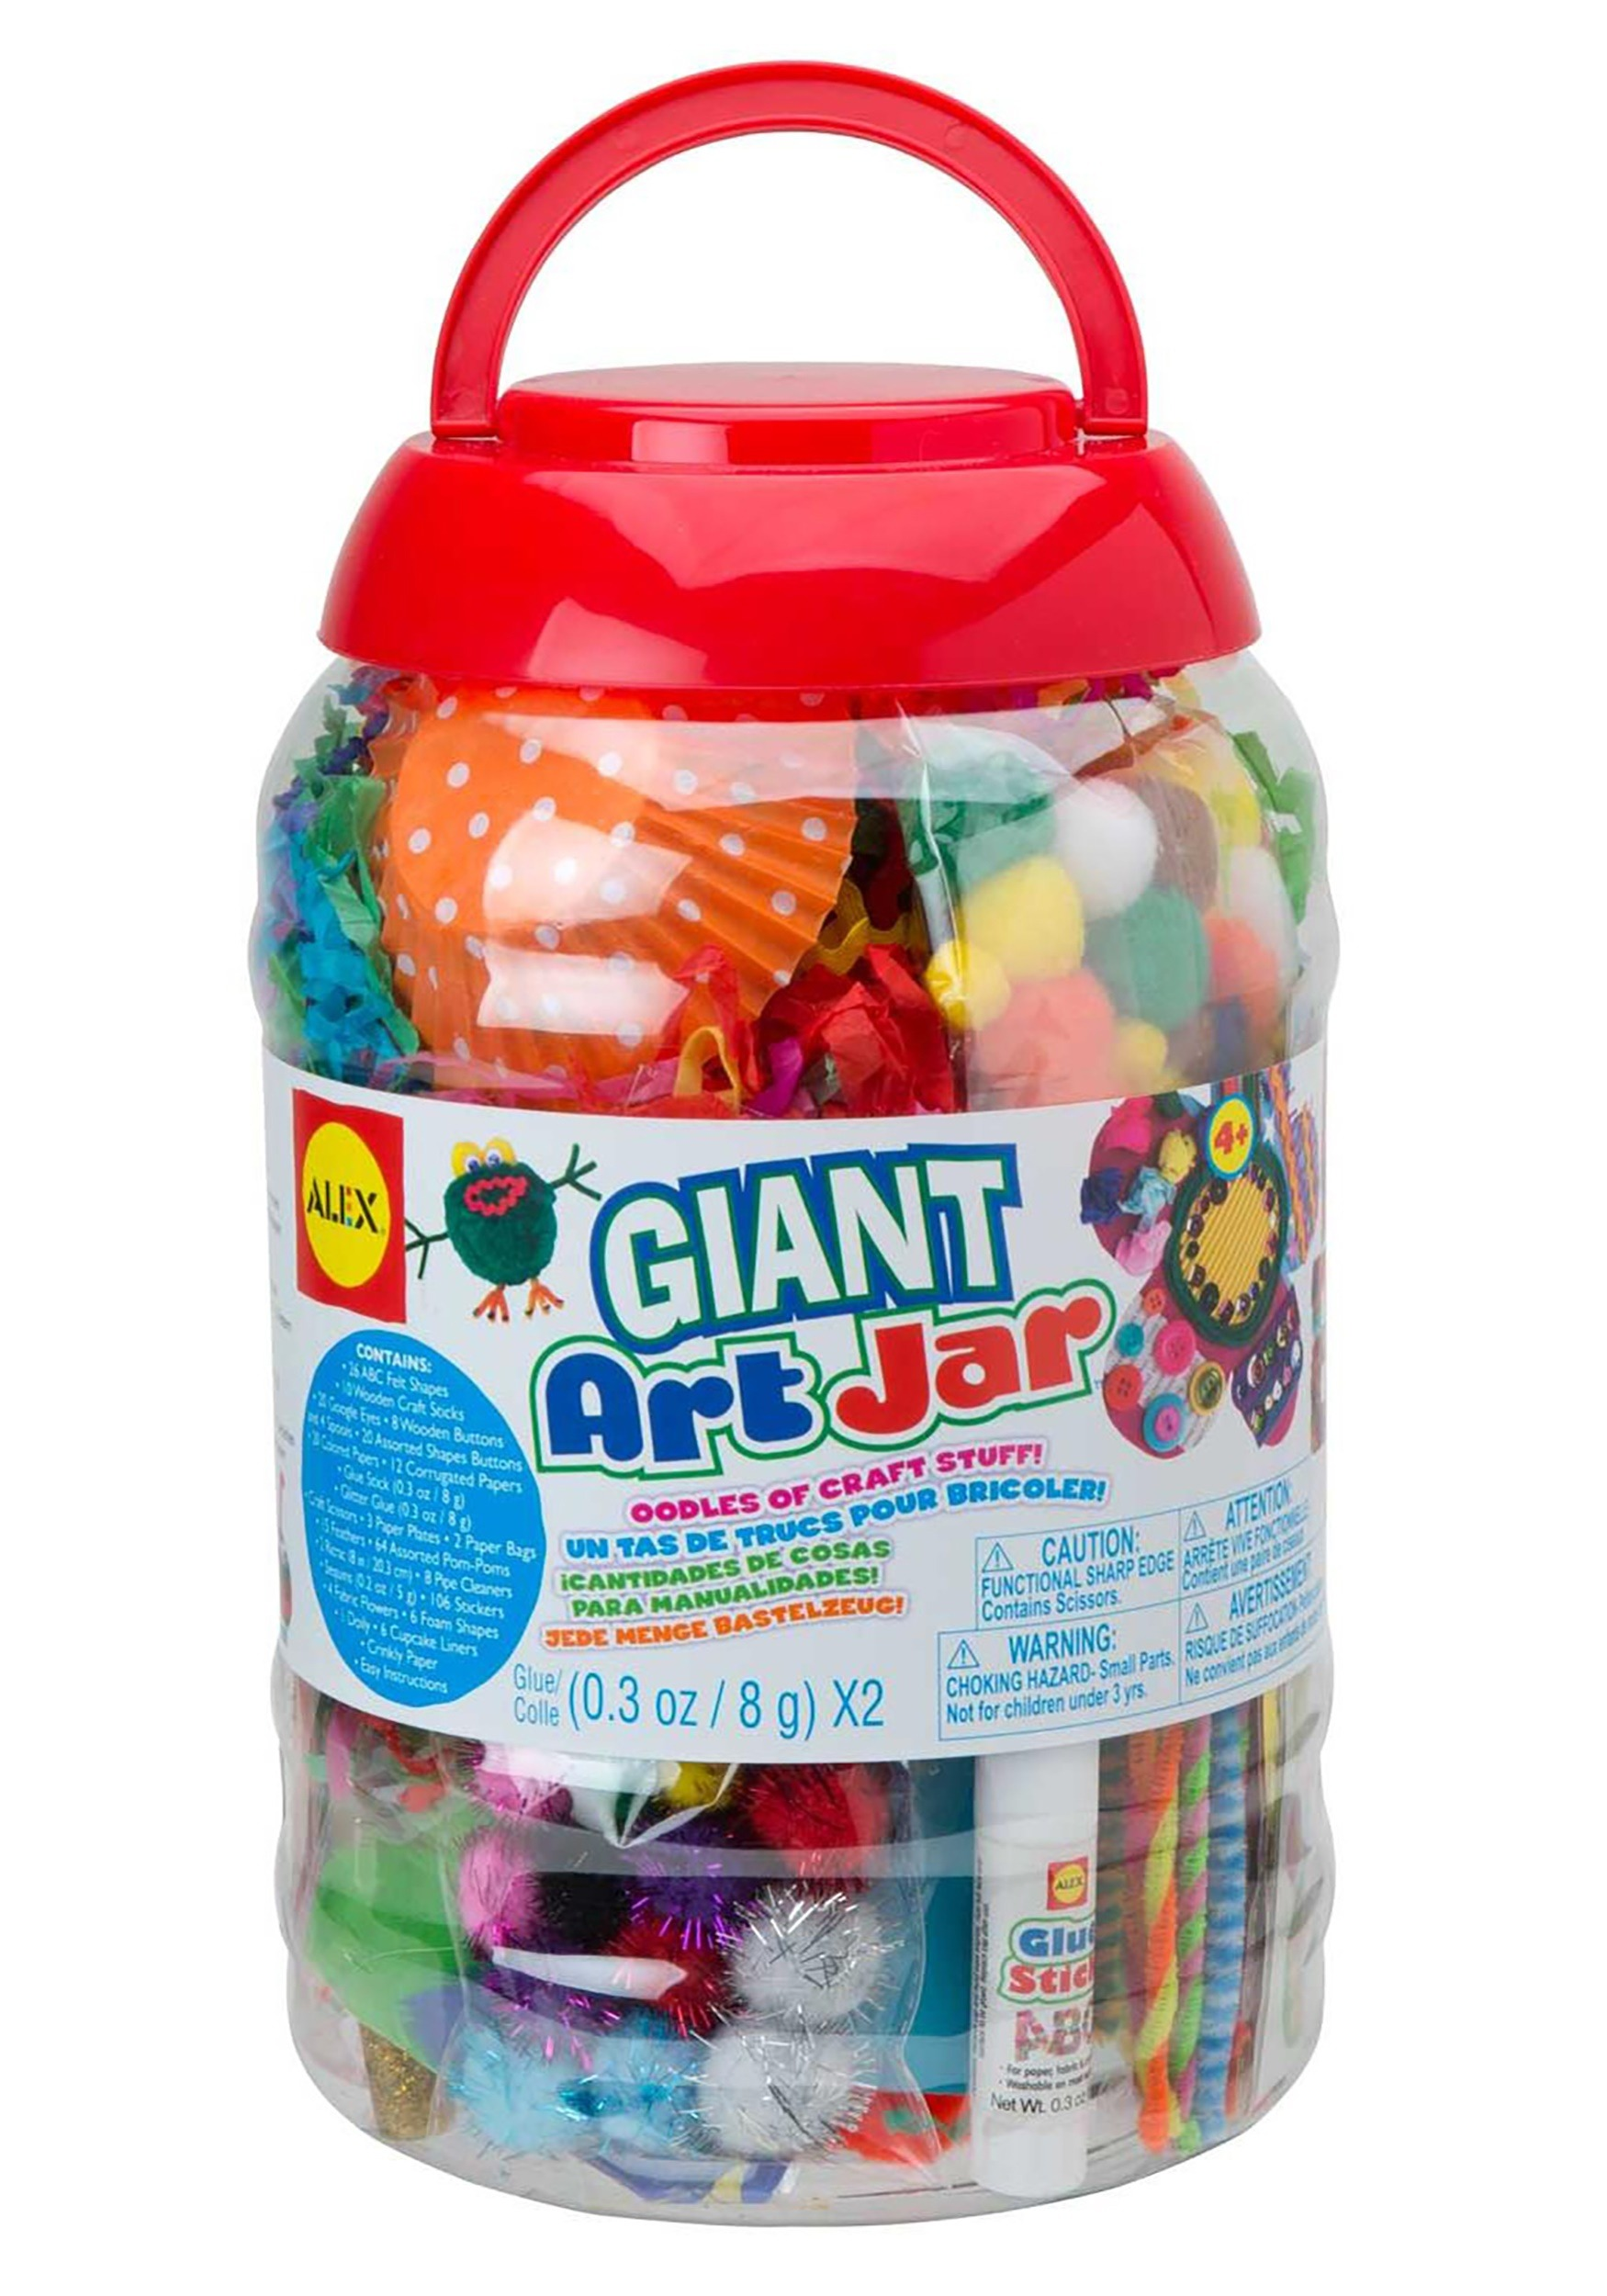 Giant_Art_Jar